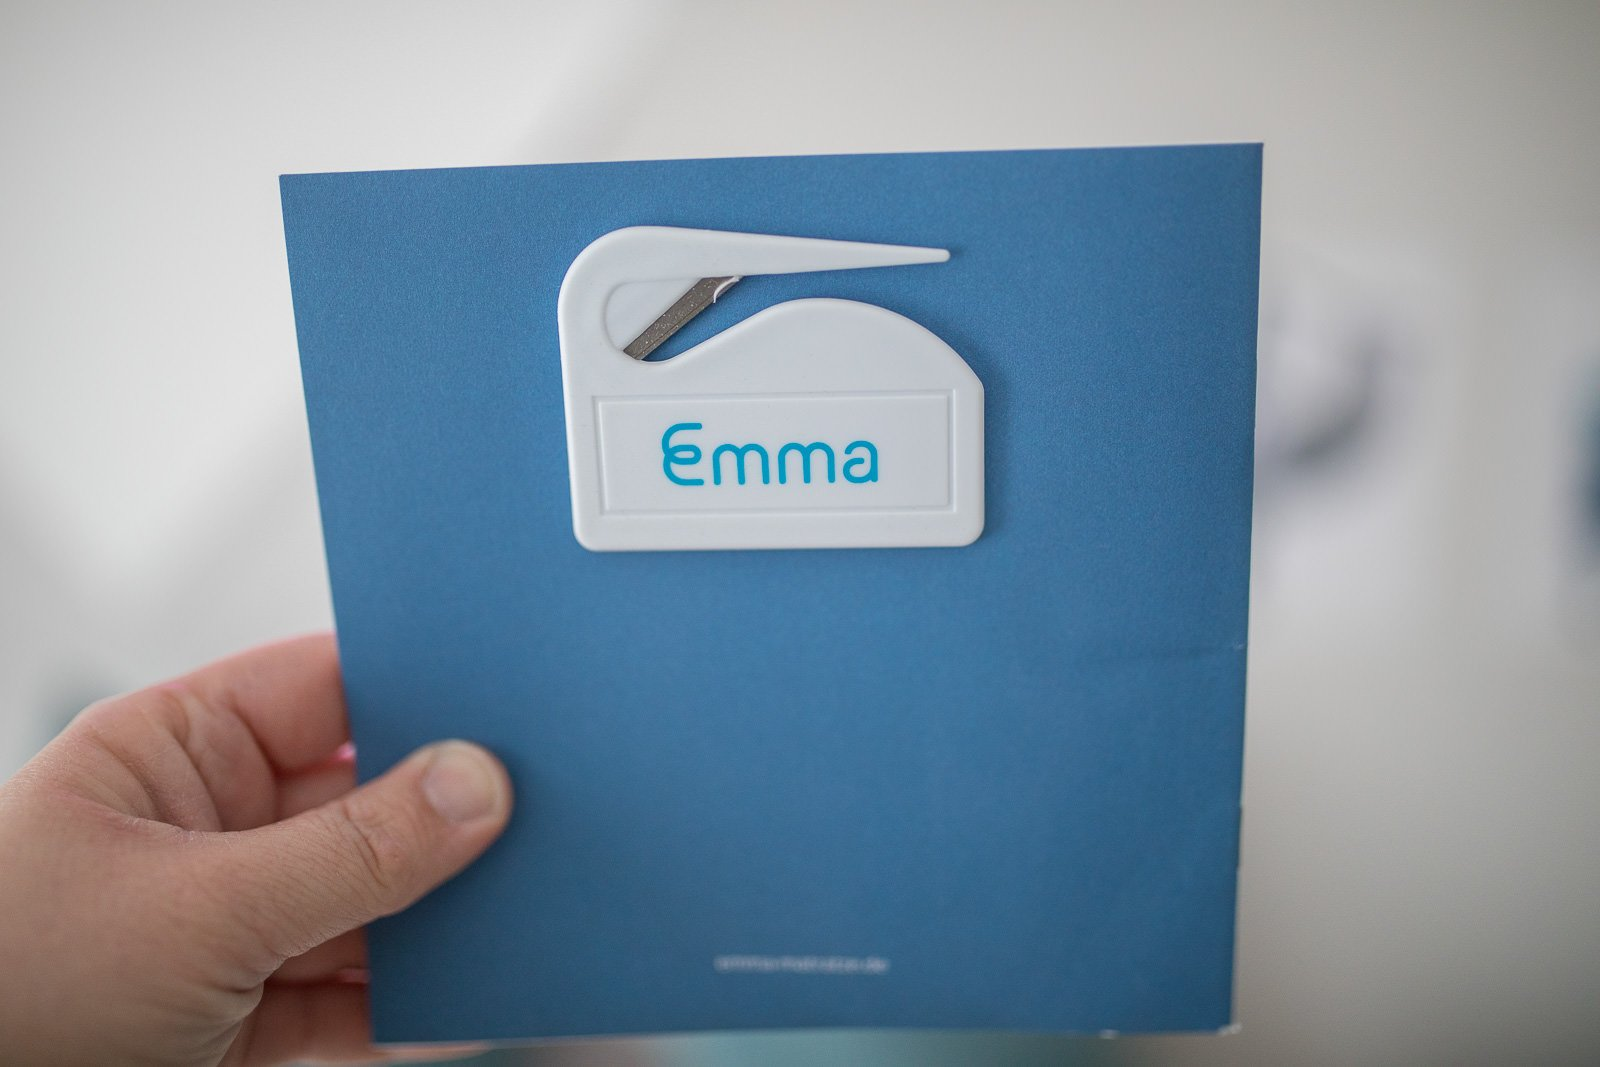 emma air auspacken